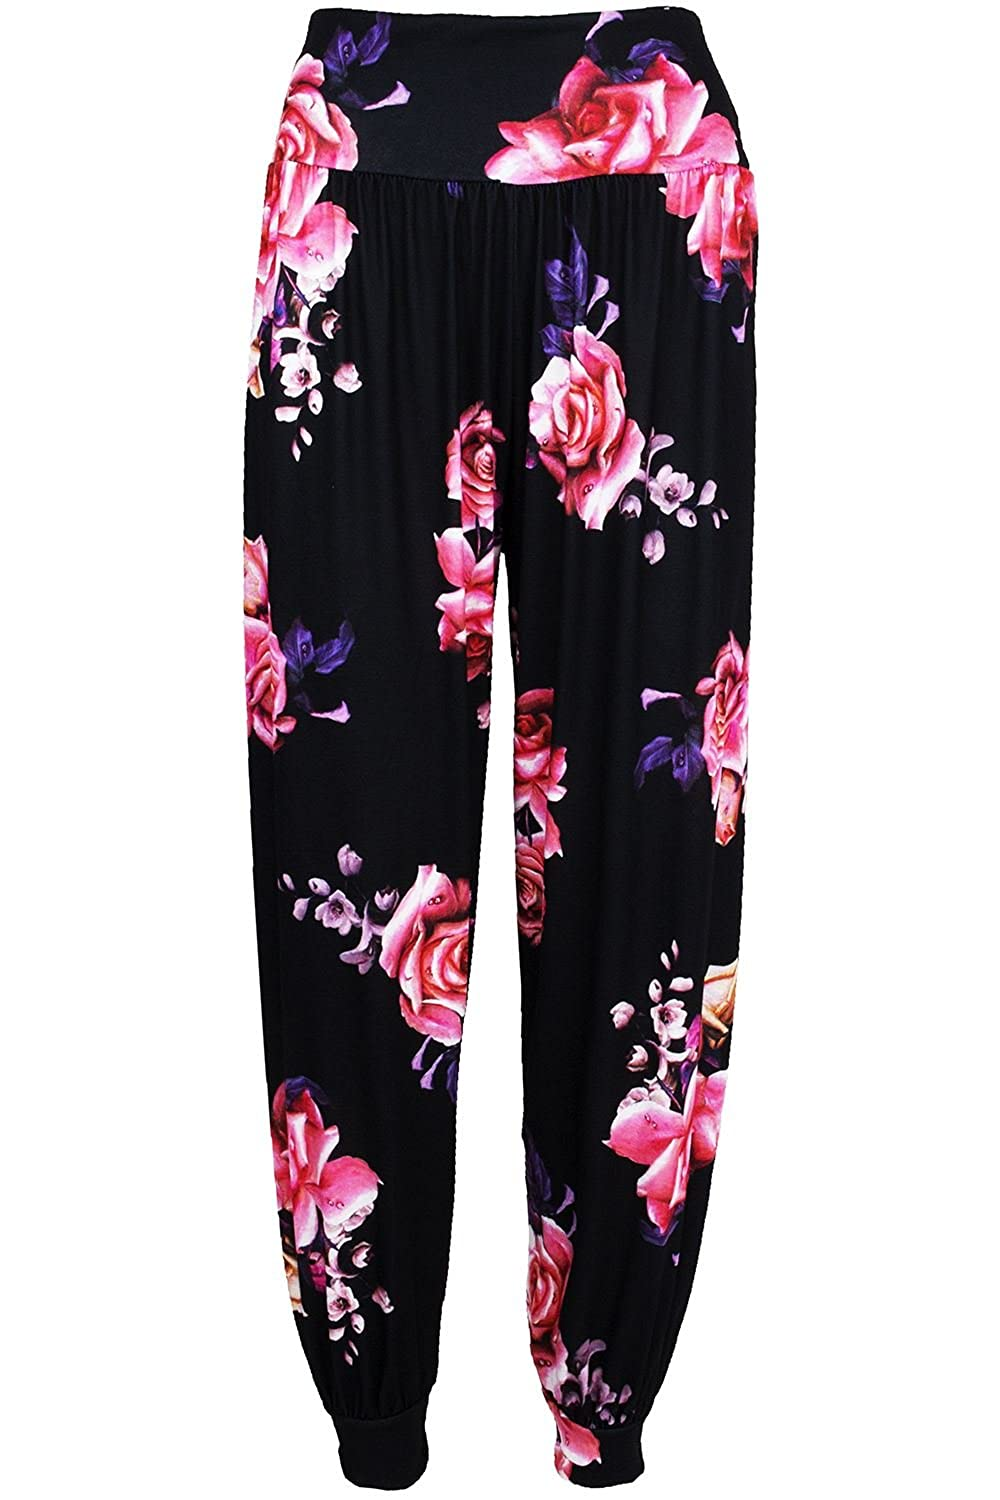 Be Jealous Womens Ladies Floral Ali Baba Bottoms Harem Pants Trouser Aladdin Hippy Leggings UK Plus Size 8-26